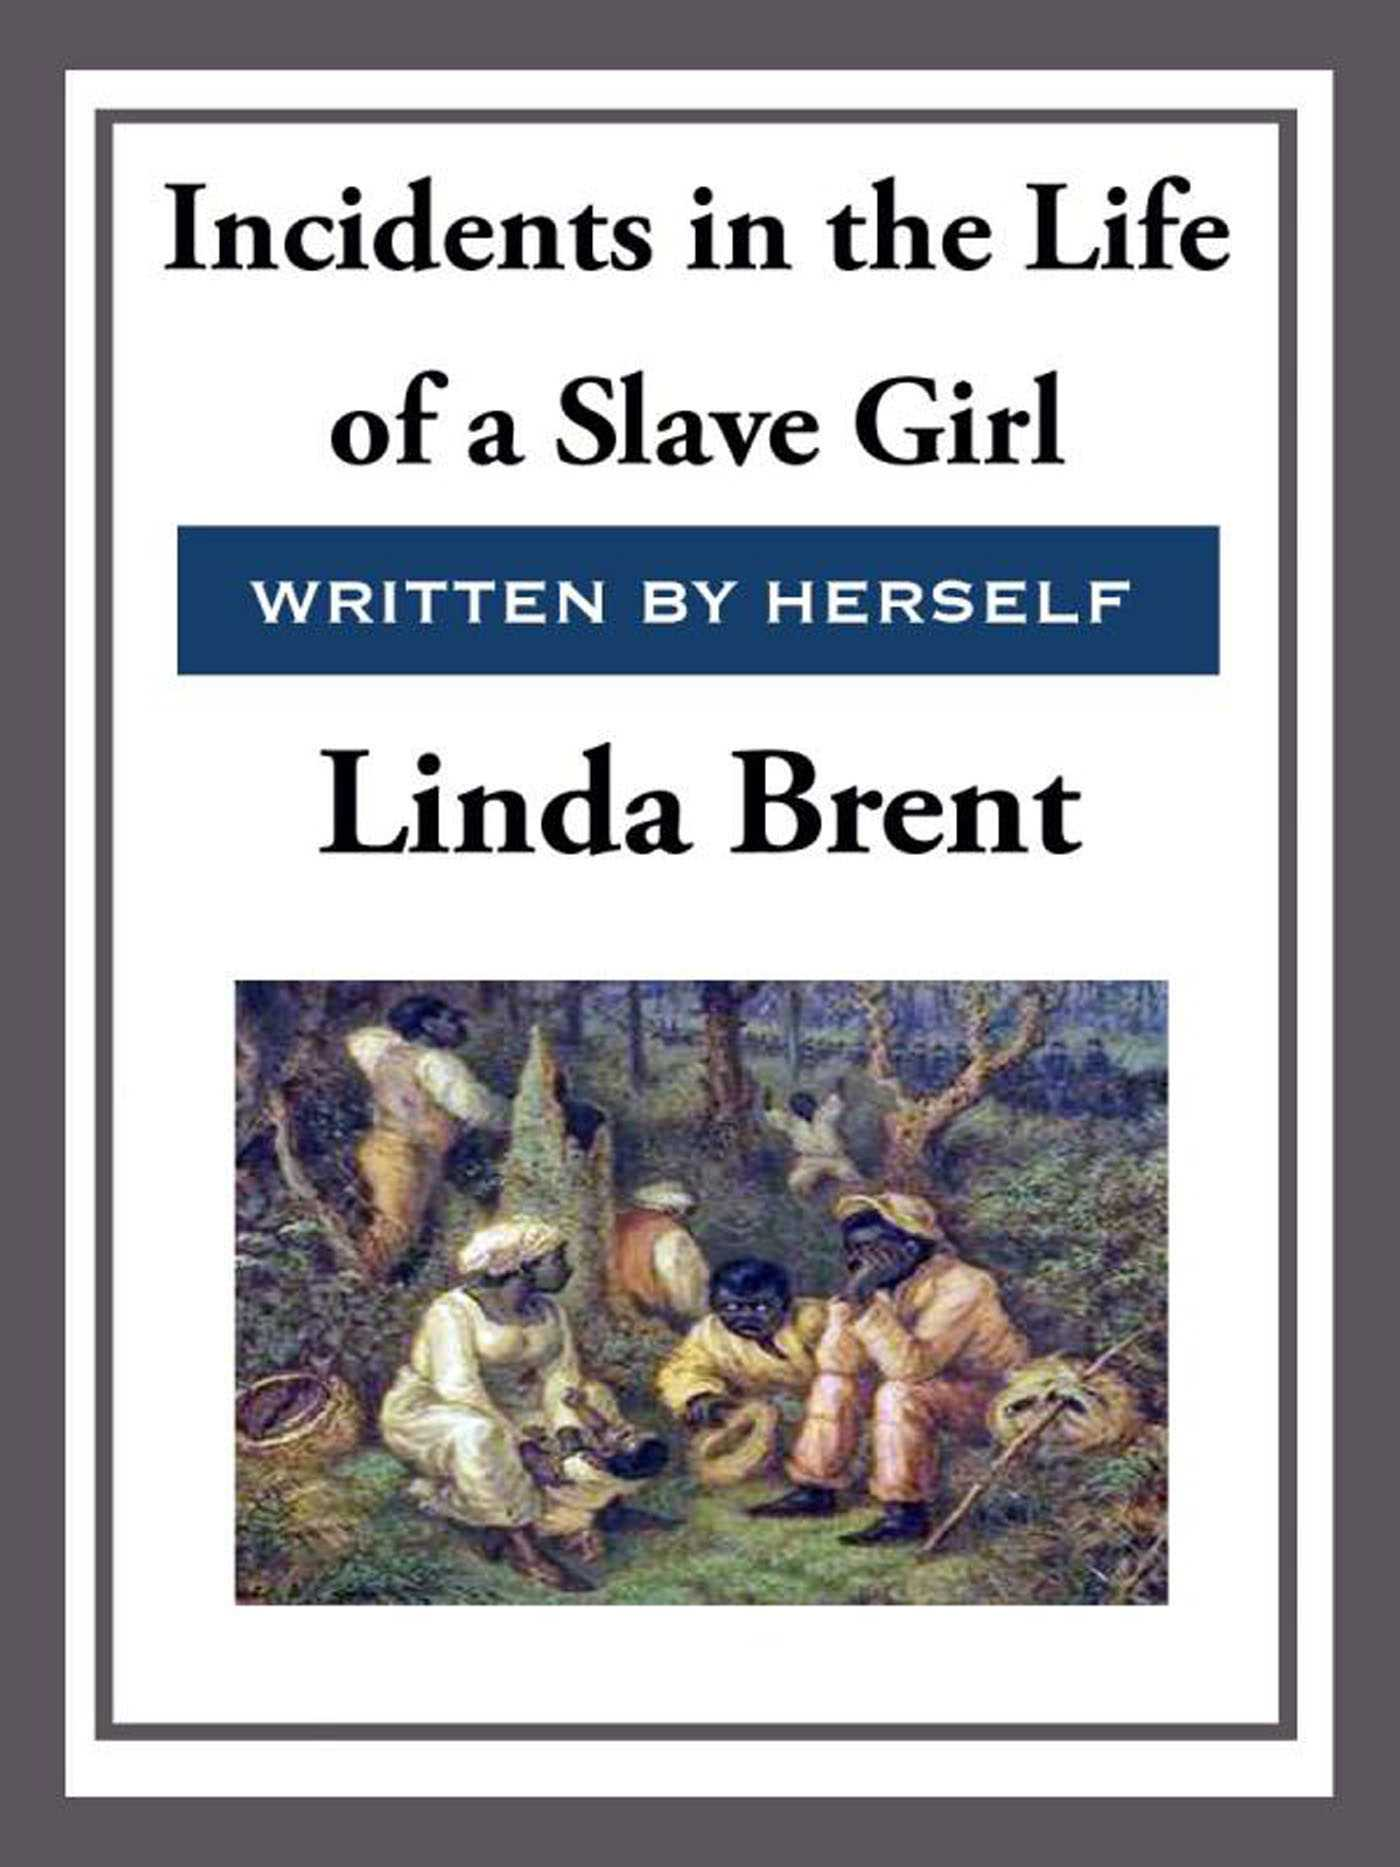 Incidents in the life of a slave girl ebook by linda brent incidents in the life of a slave girl 9781625586377 hr fandeluxe PDF